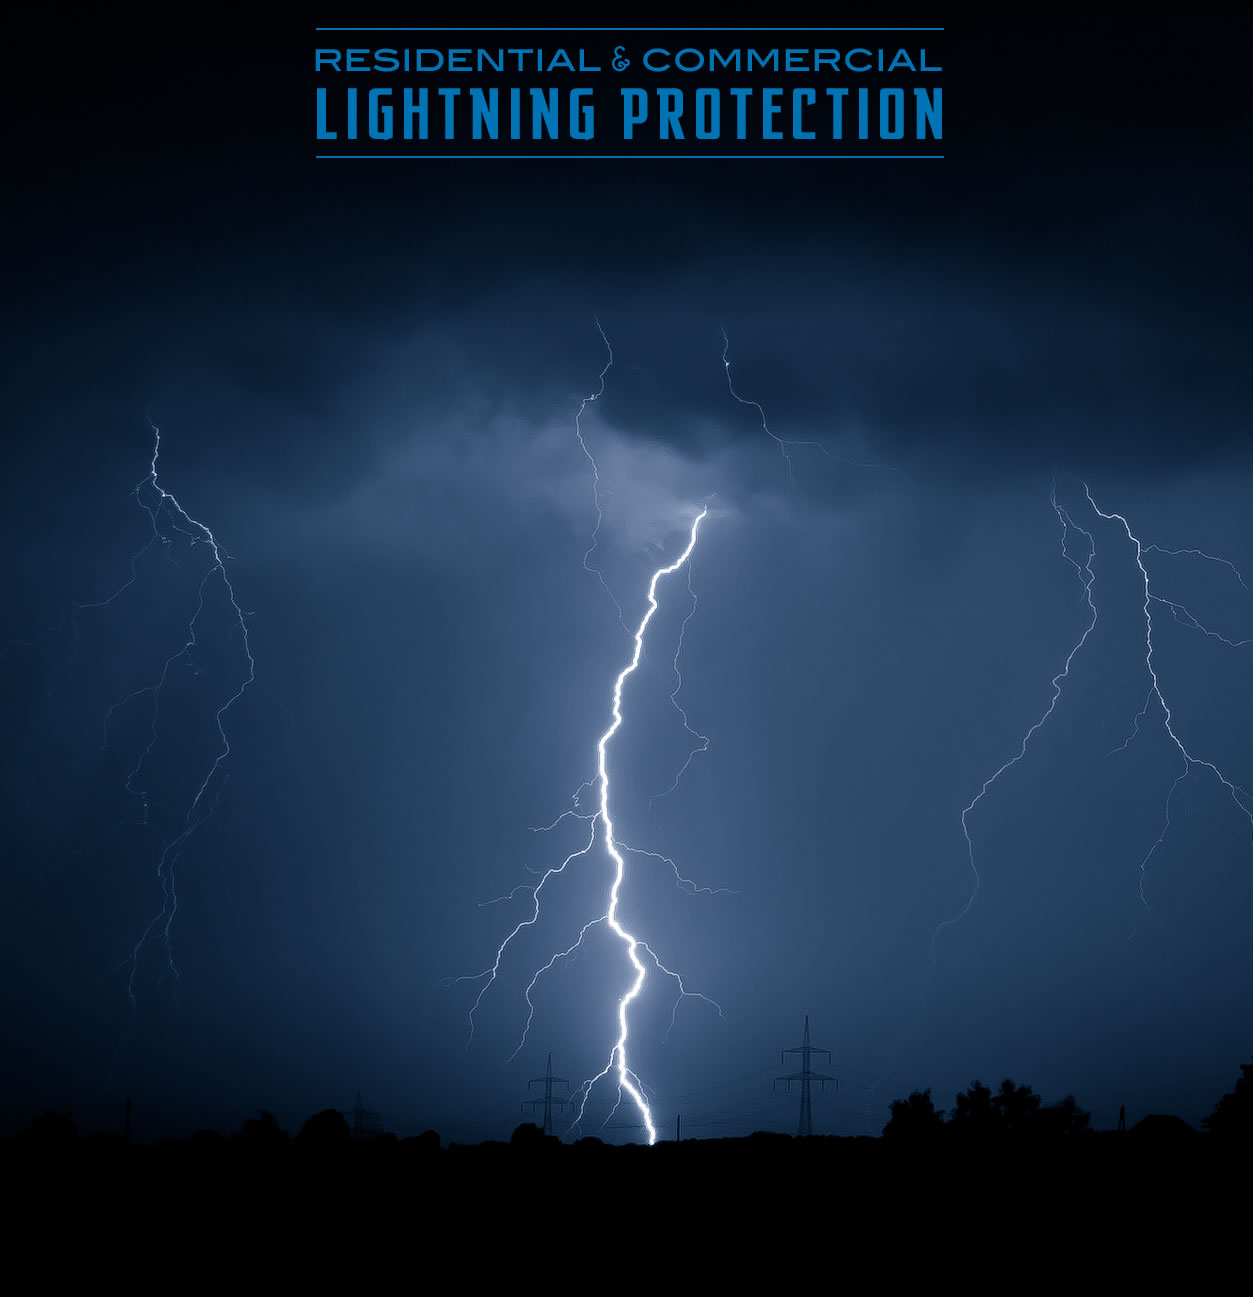 Commercial Lightning Protection: Austin Lightning Protection Systems